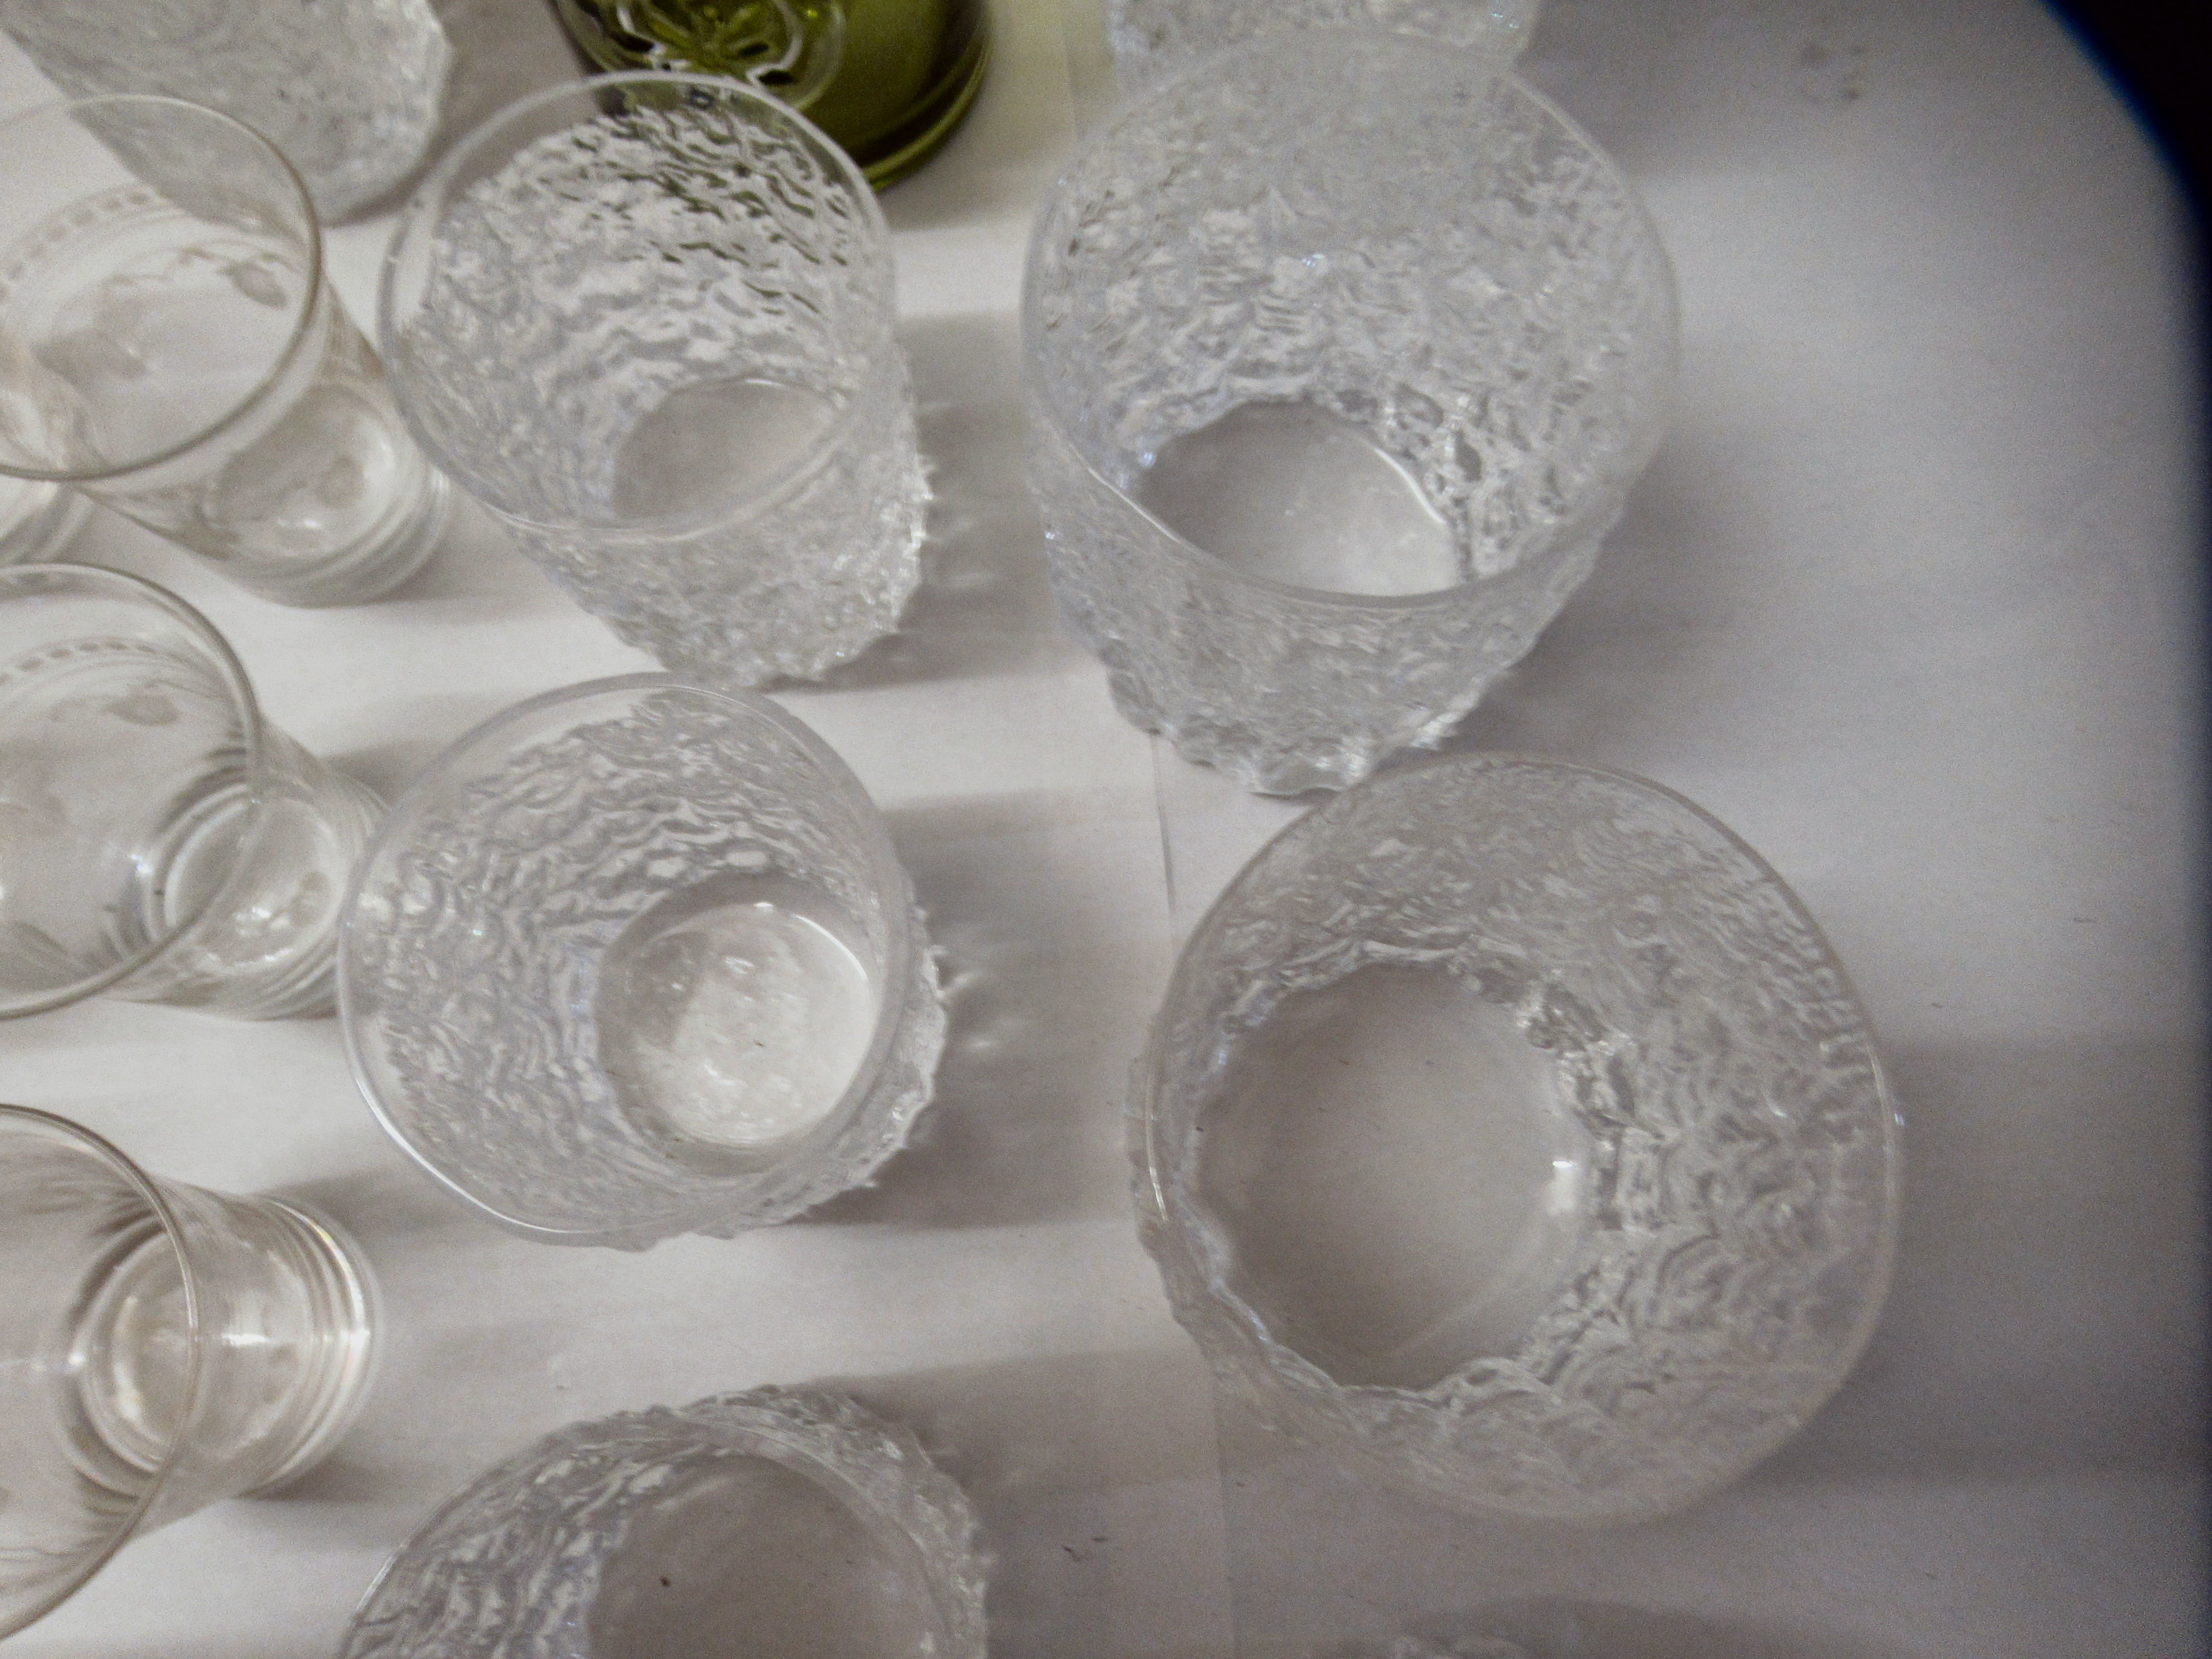 Bark effect Whitefriars cordial and other drinking glasses - Image 4 of 6